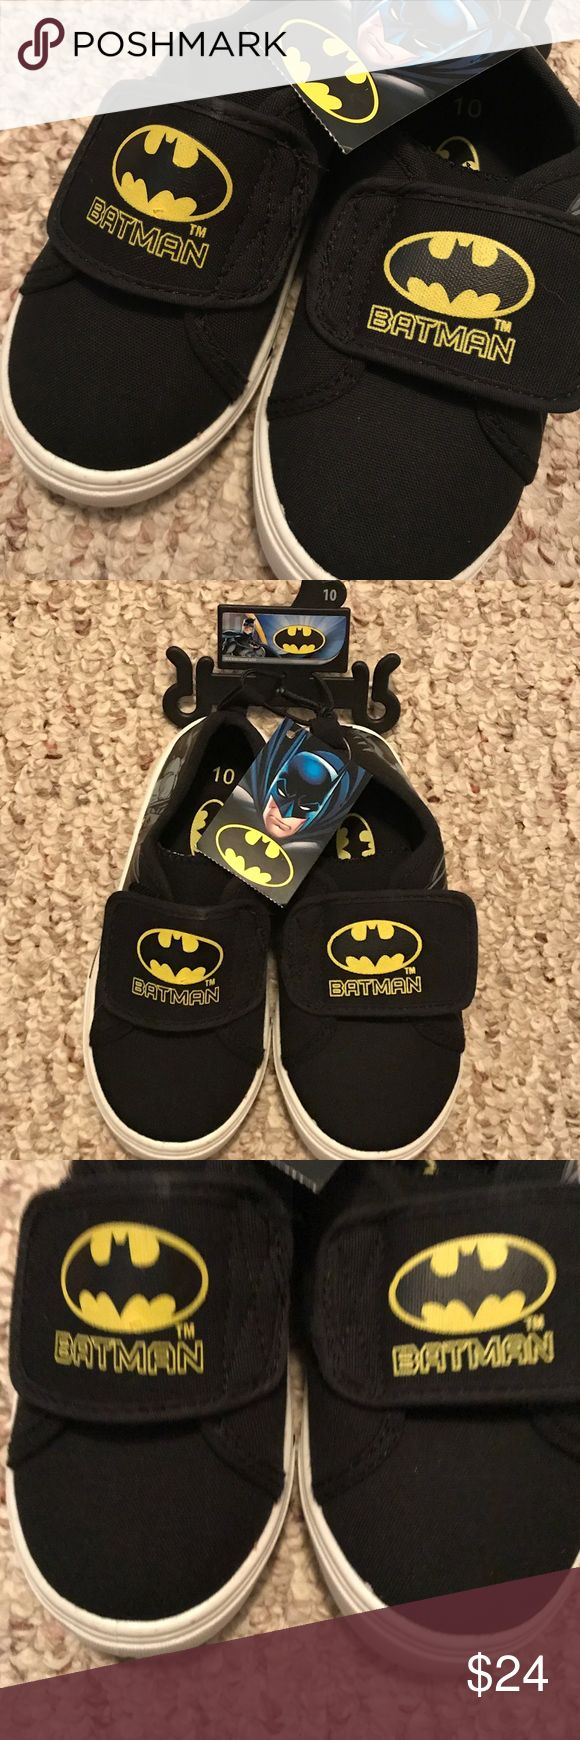 NEW BATMAN Boys Size 10 Velcro Sneakers New! Boys' BATMAN Sneakers • 100% Authentic, Licensed Product • Black w/ Yellow Bat Signal • Wide Velcro Band • Vibrant Print Colors • No holes, snags or stains  * Smoke-free If we forgot anything, just tag us and ask! No 🅿️🅿️ No Ⓜ️ 🚫 Trades DC Shoes